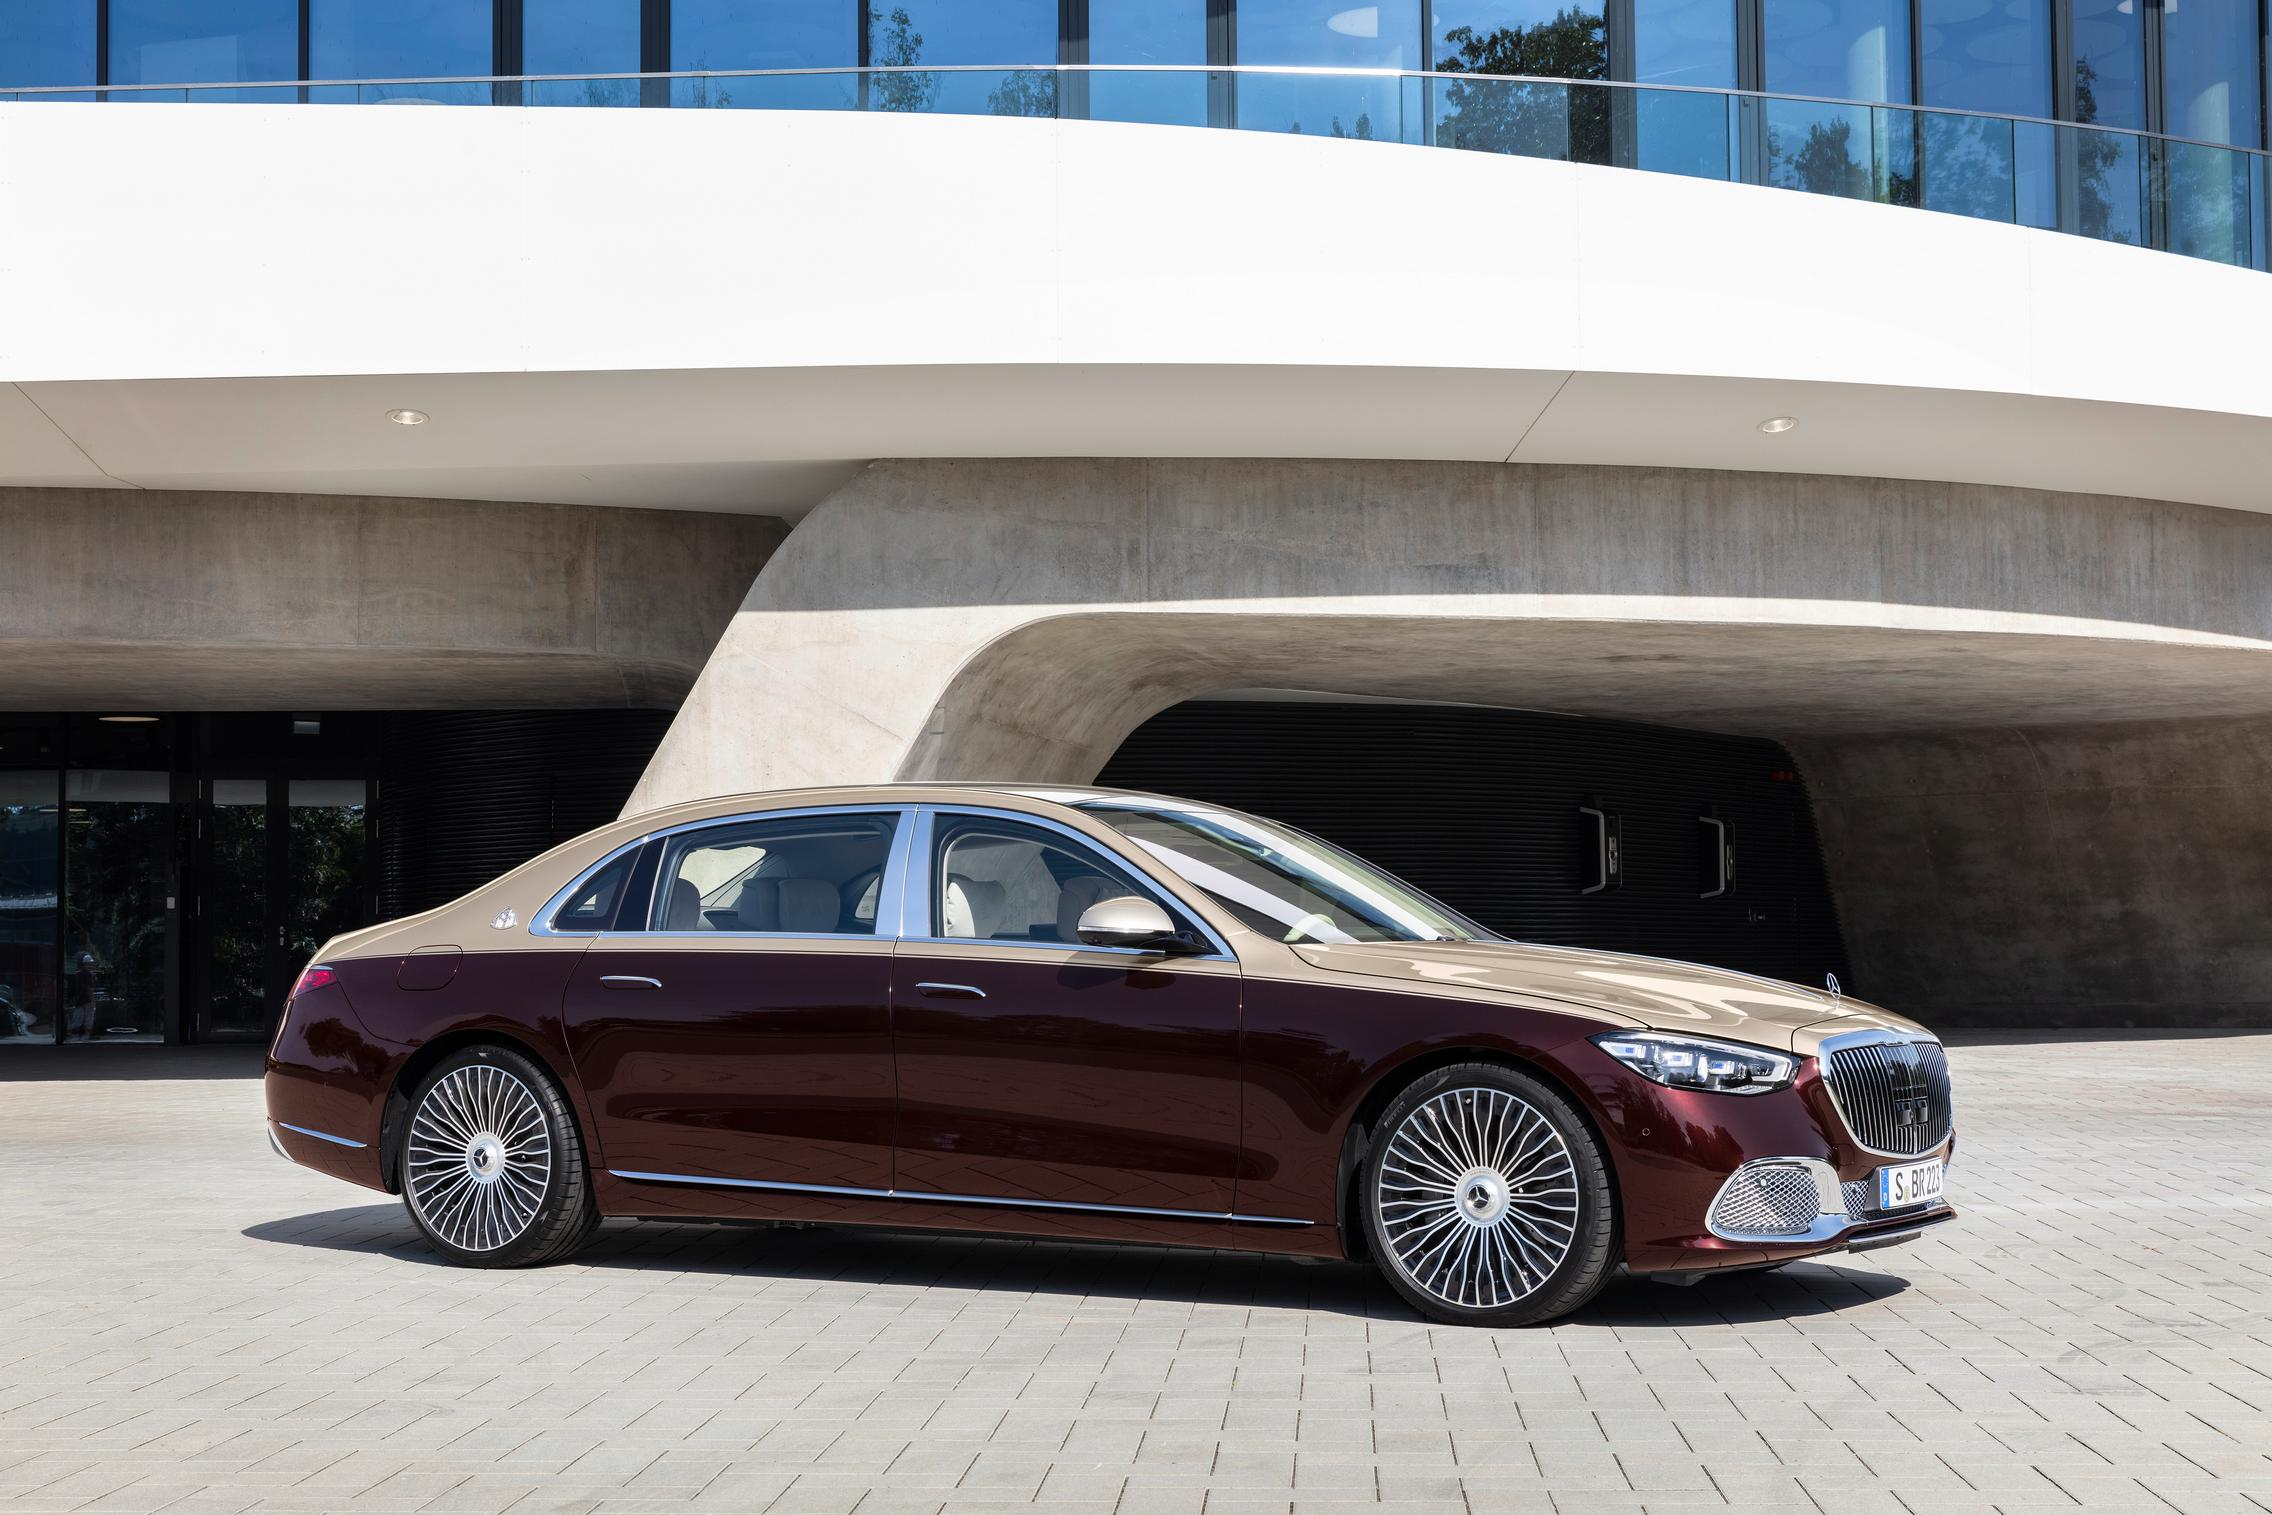 2021 Duo Tone Mercedes-Maybach S-Class